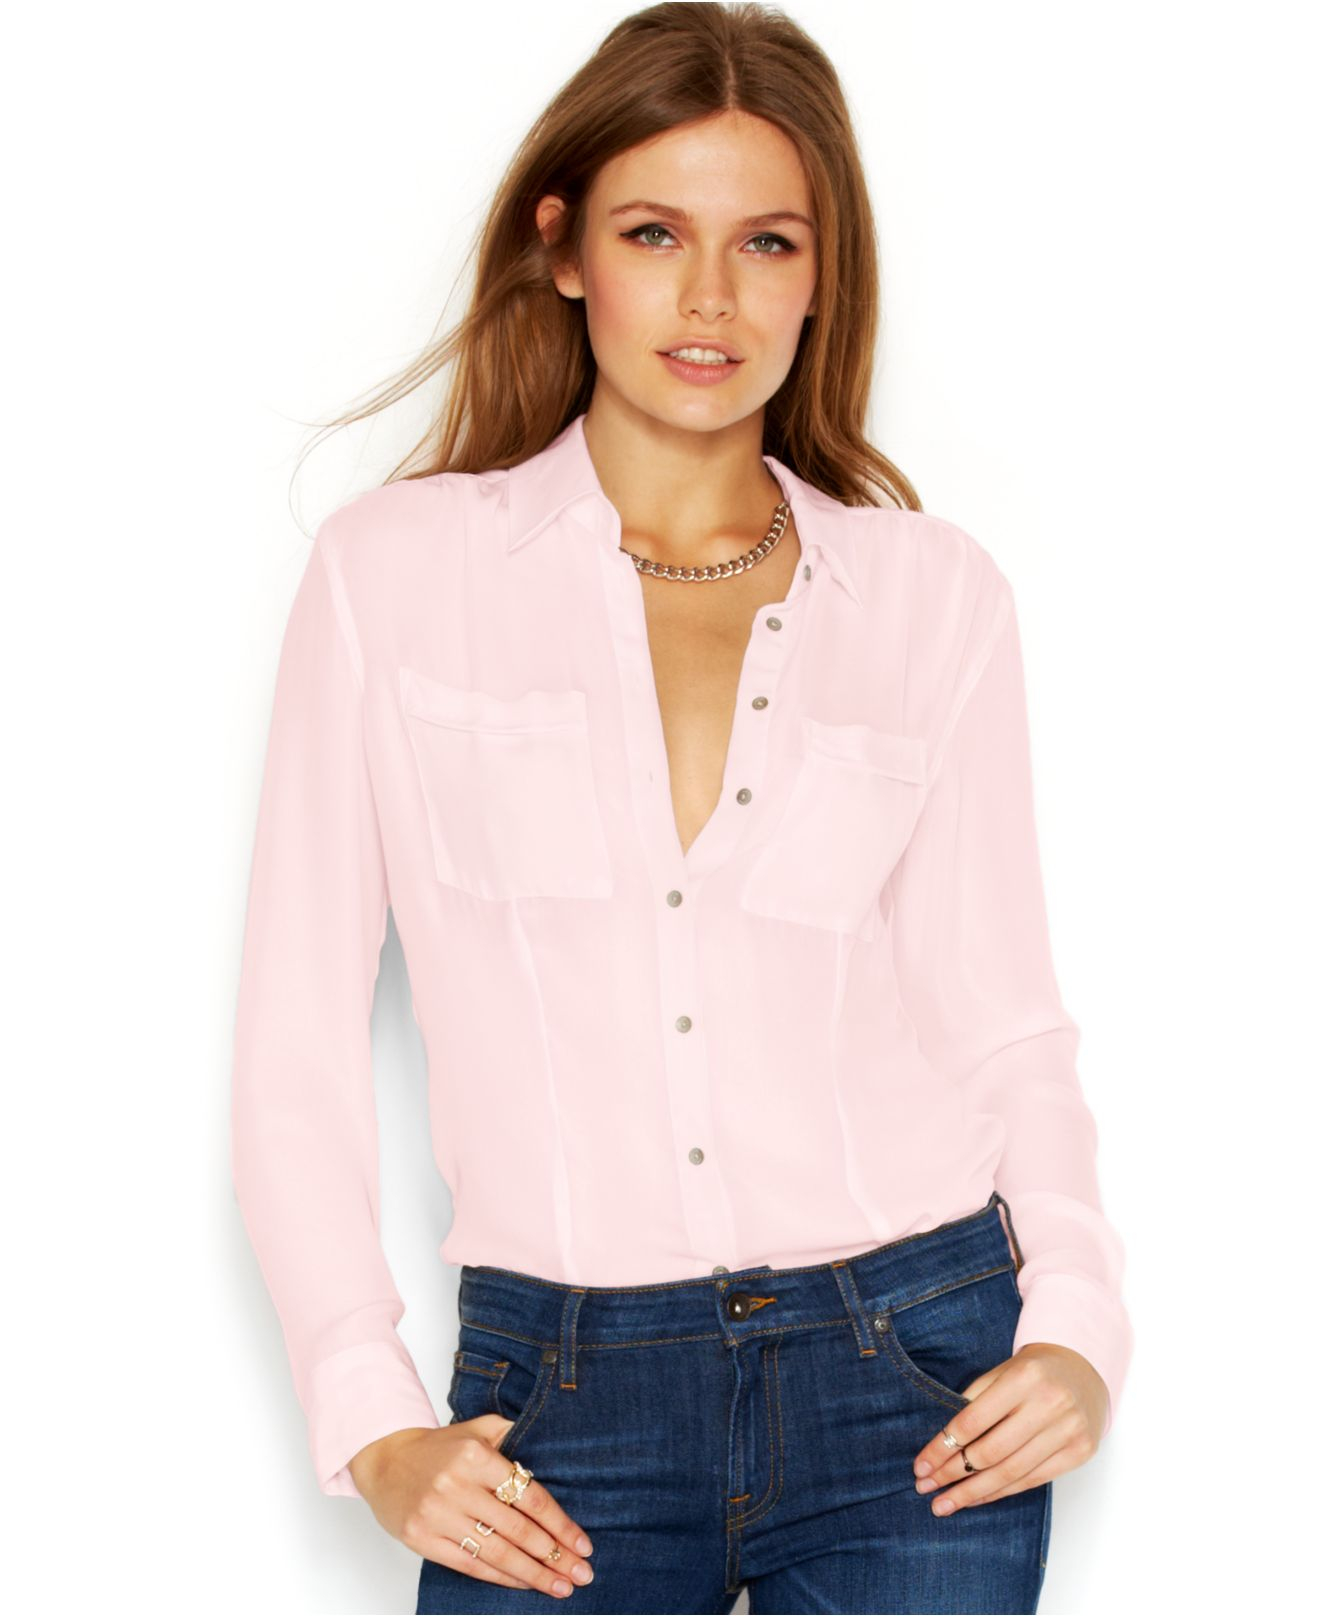 Guess Long-Sleeve Point-Collar Sheer Blouse in Pink | Lyst